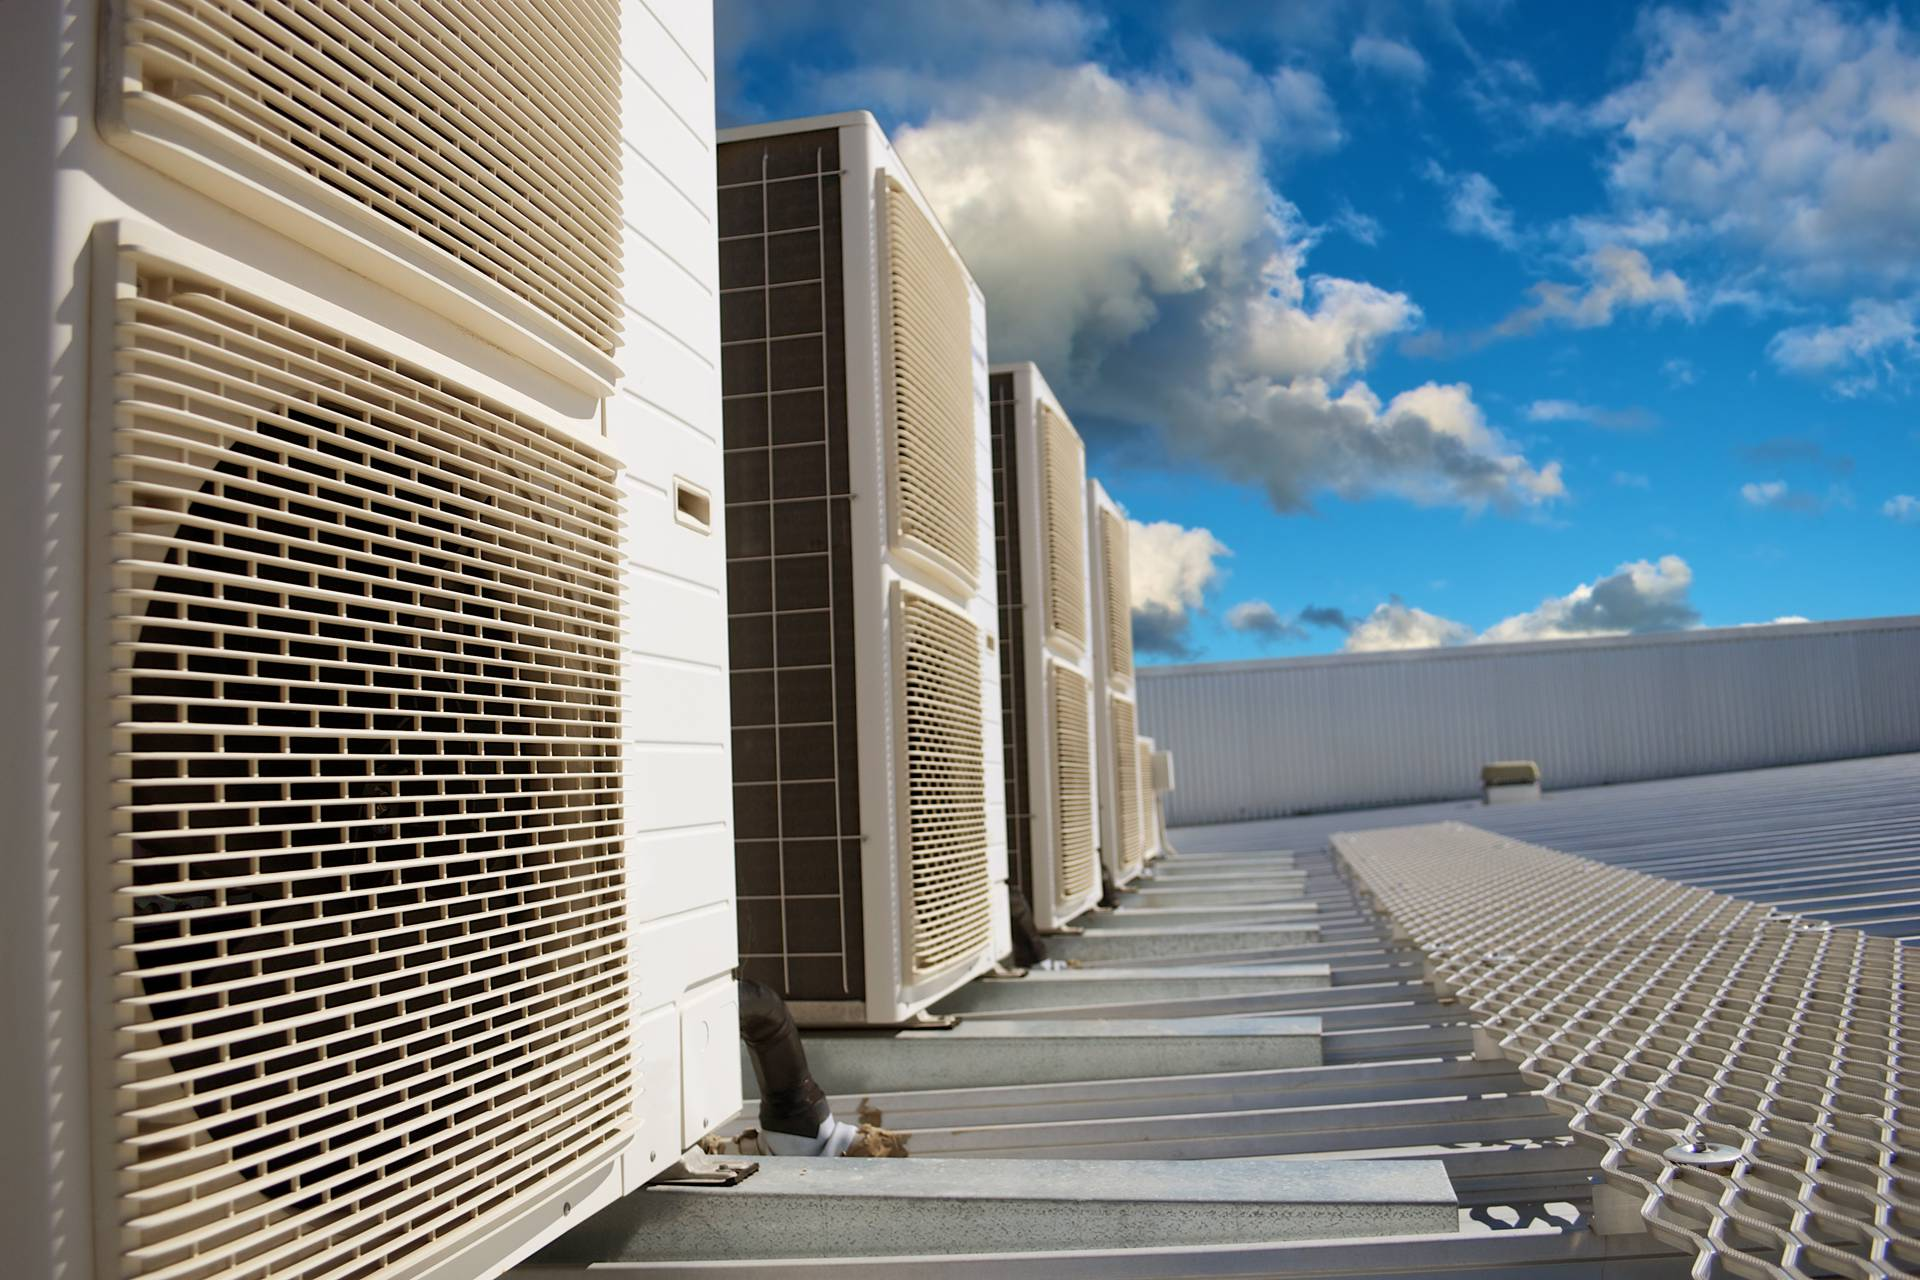 Heatpump / Airconditioning outdoor unit